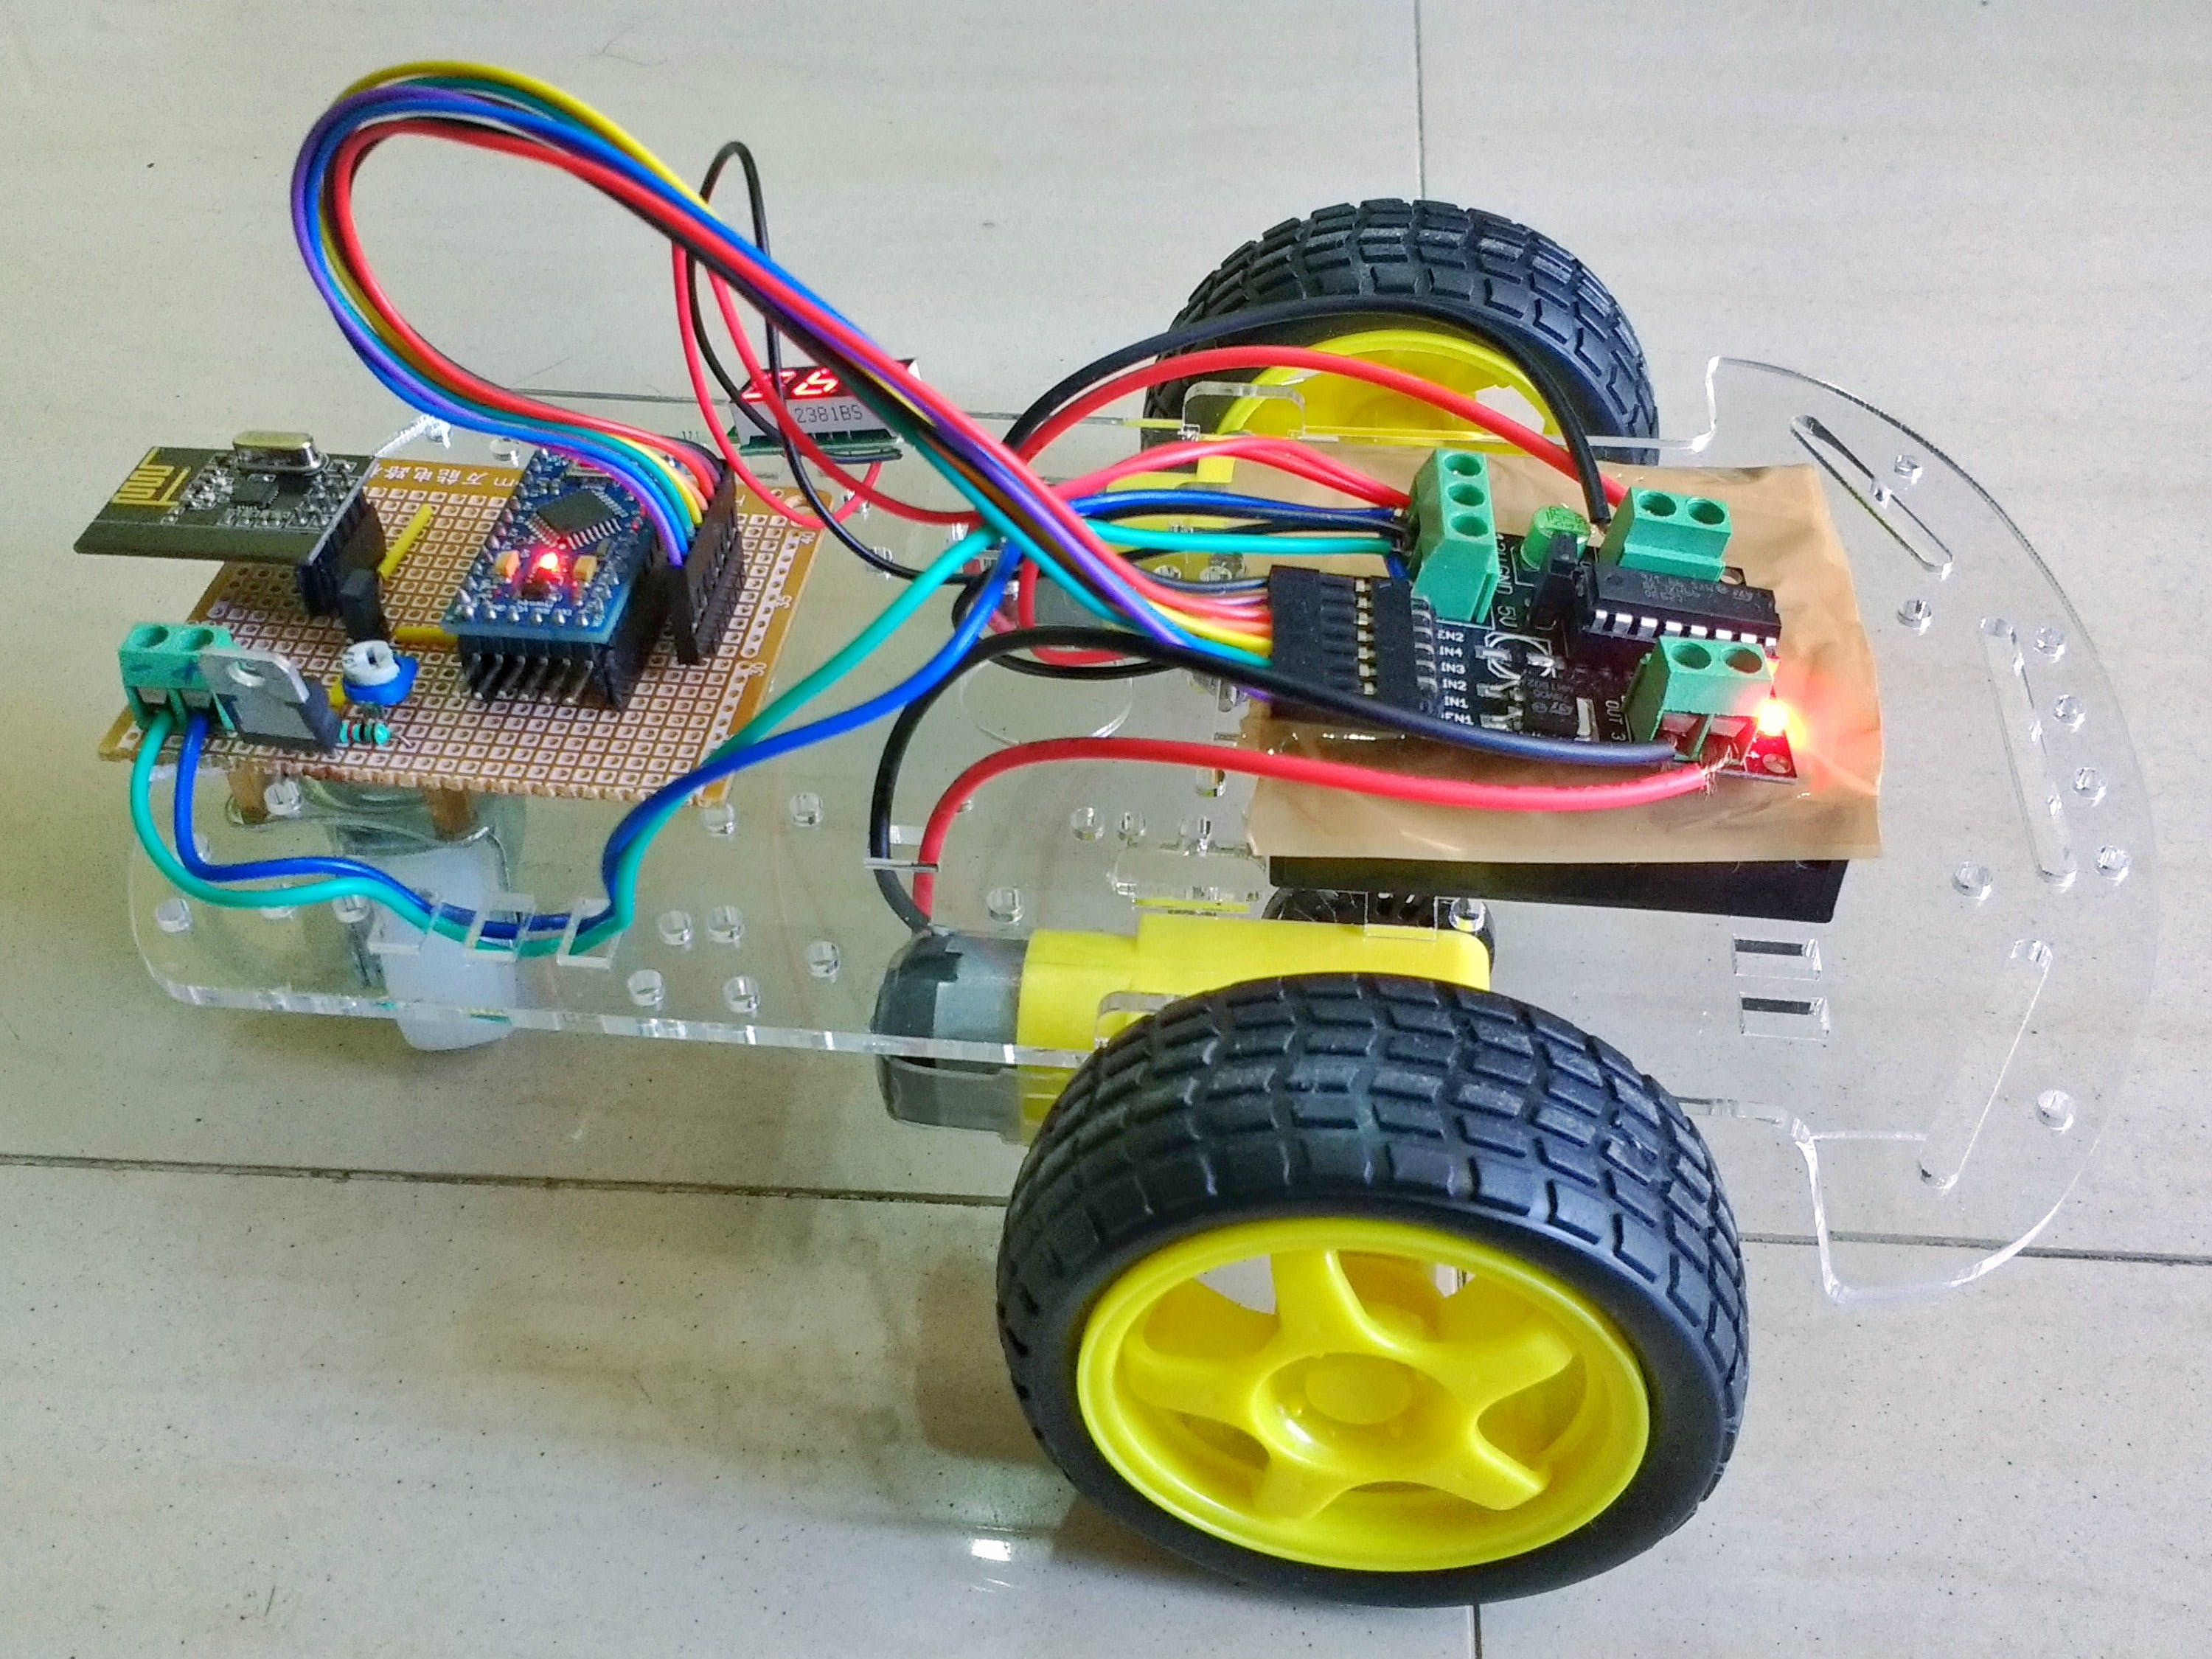 RC Toy Car Using nRF24L01